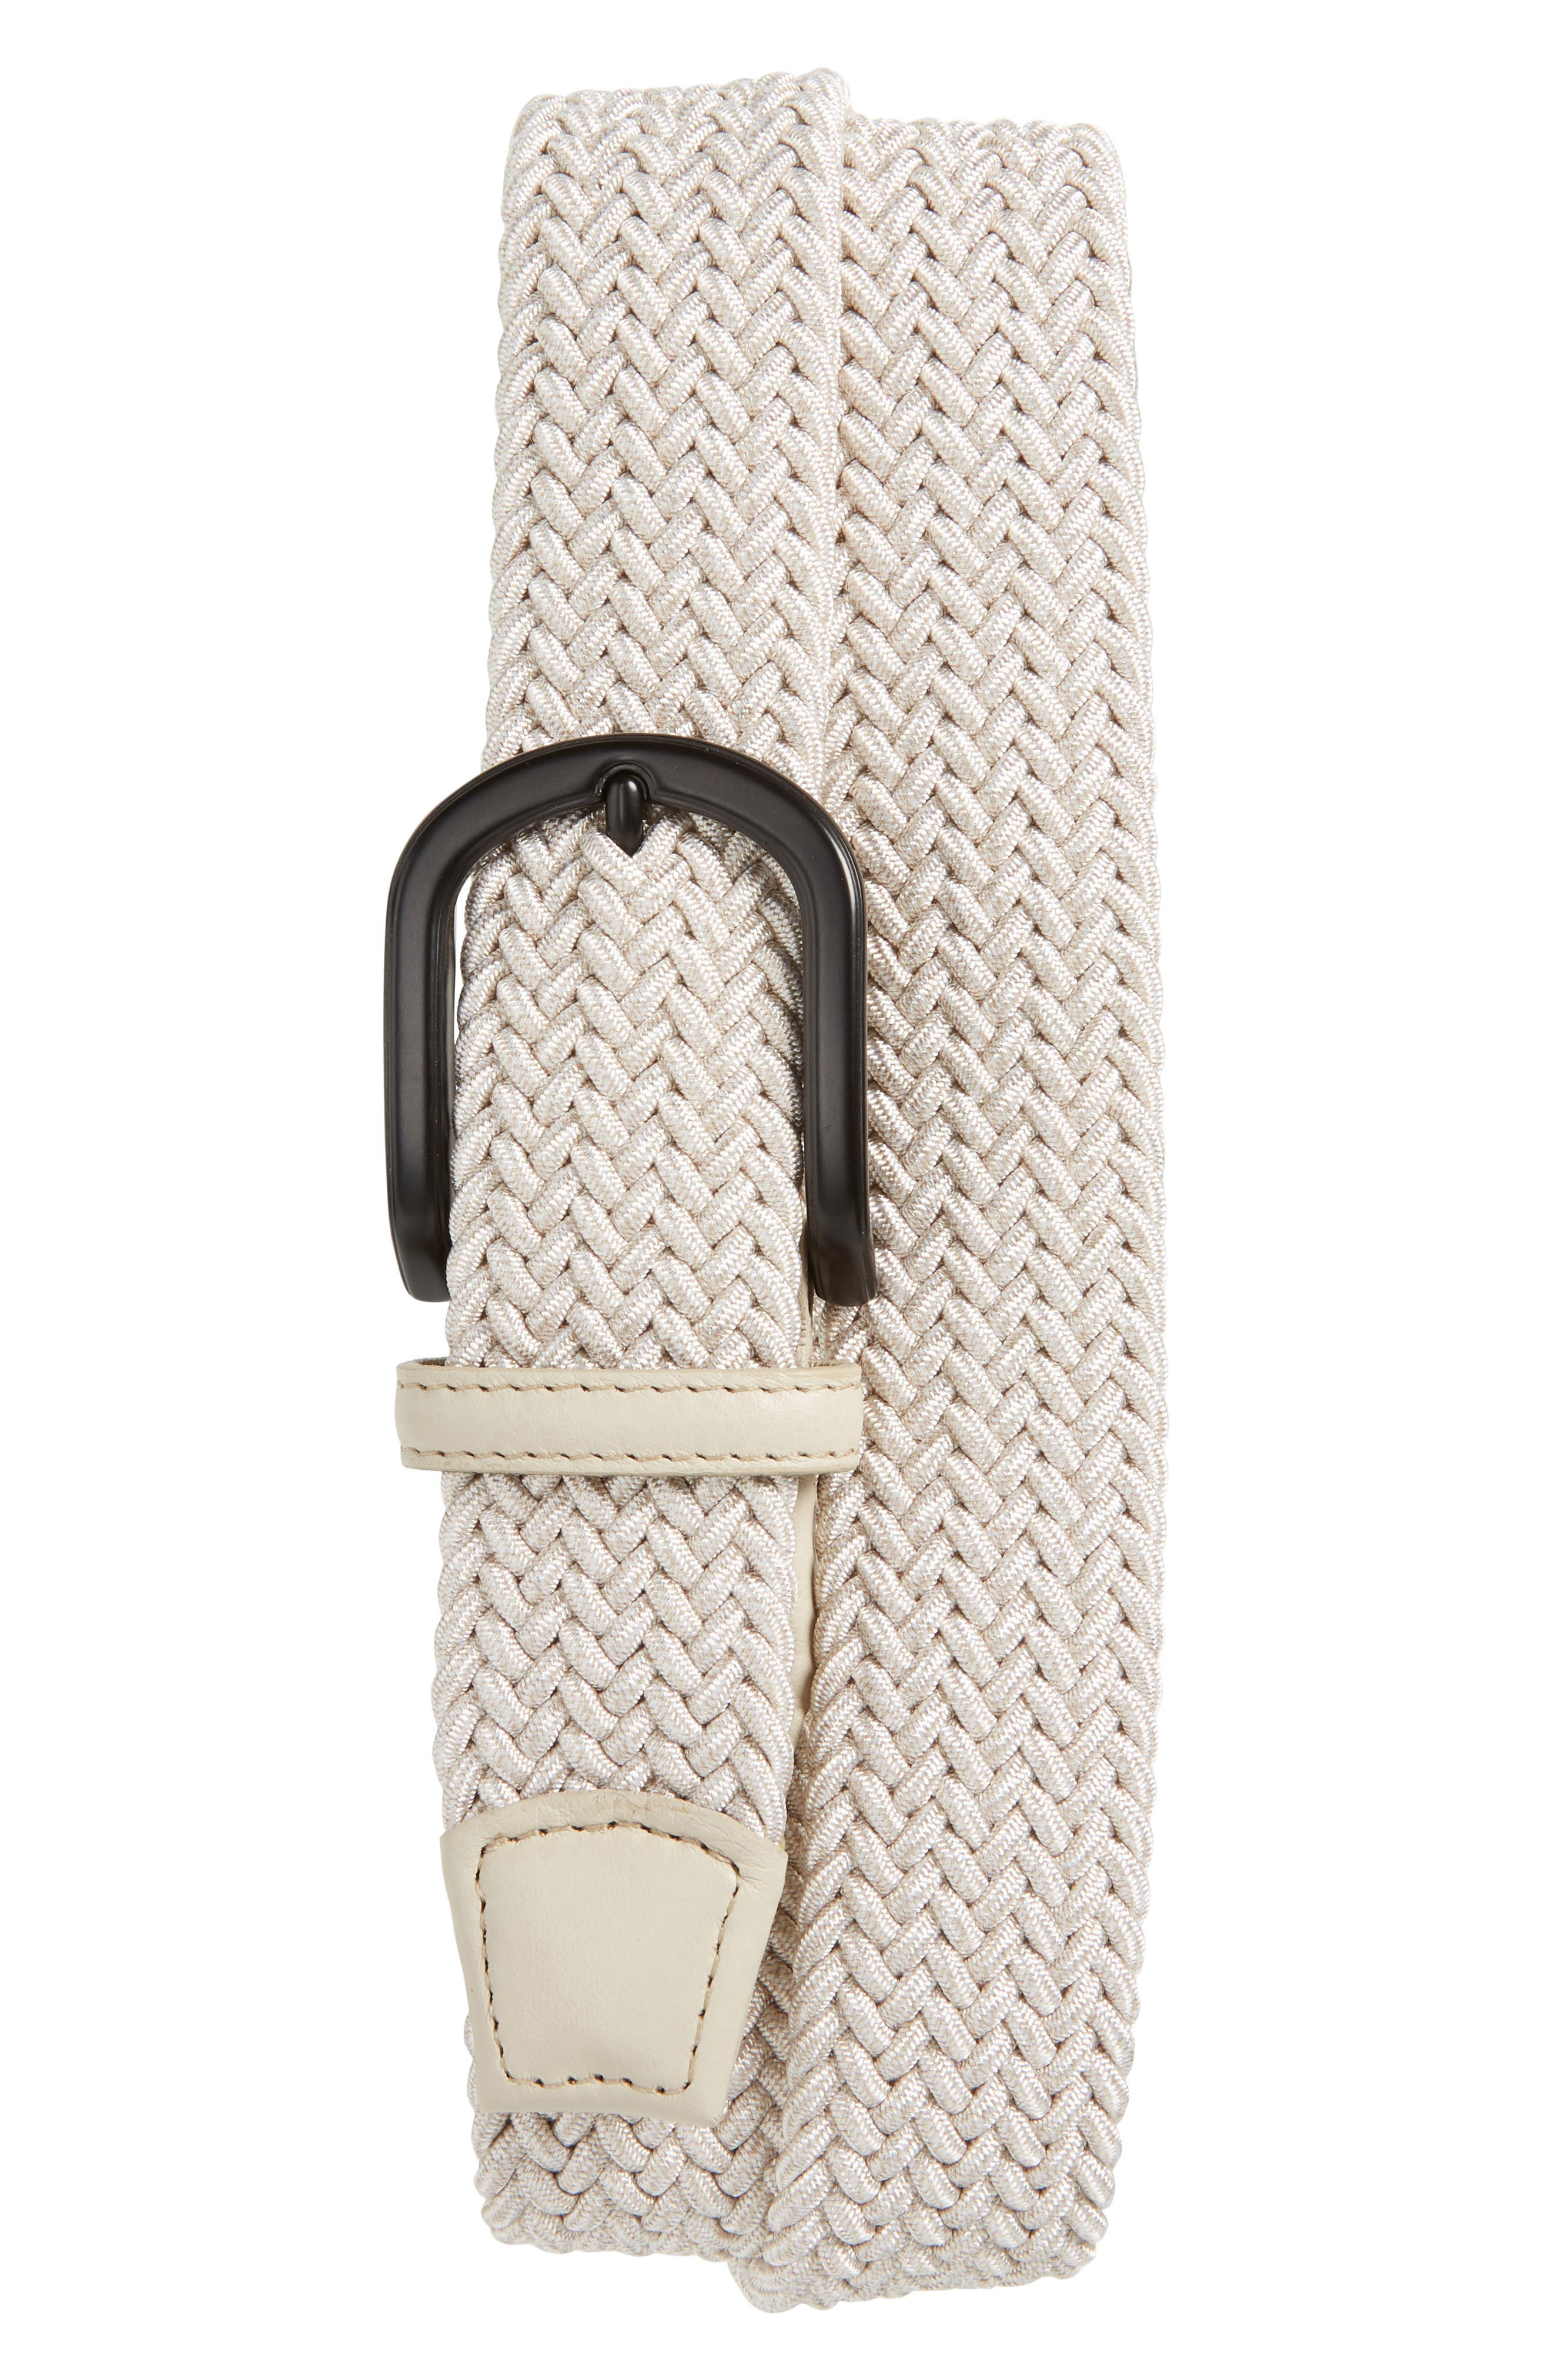 Stretchy Italian fibers mean a flexible fit in this American-made belt with versatile charm. Style Name: Torino Braided Melange Belt. Style Number: 5834334. Available in stores.